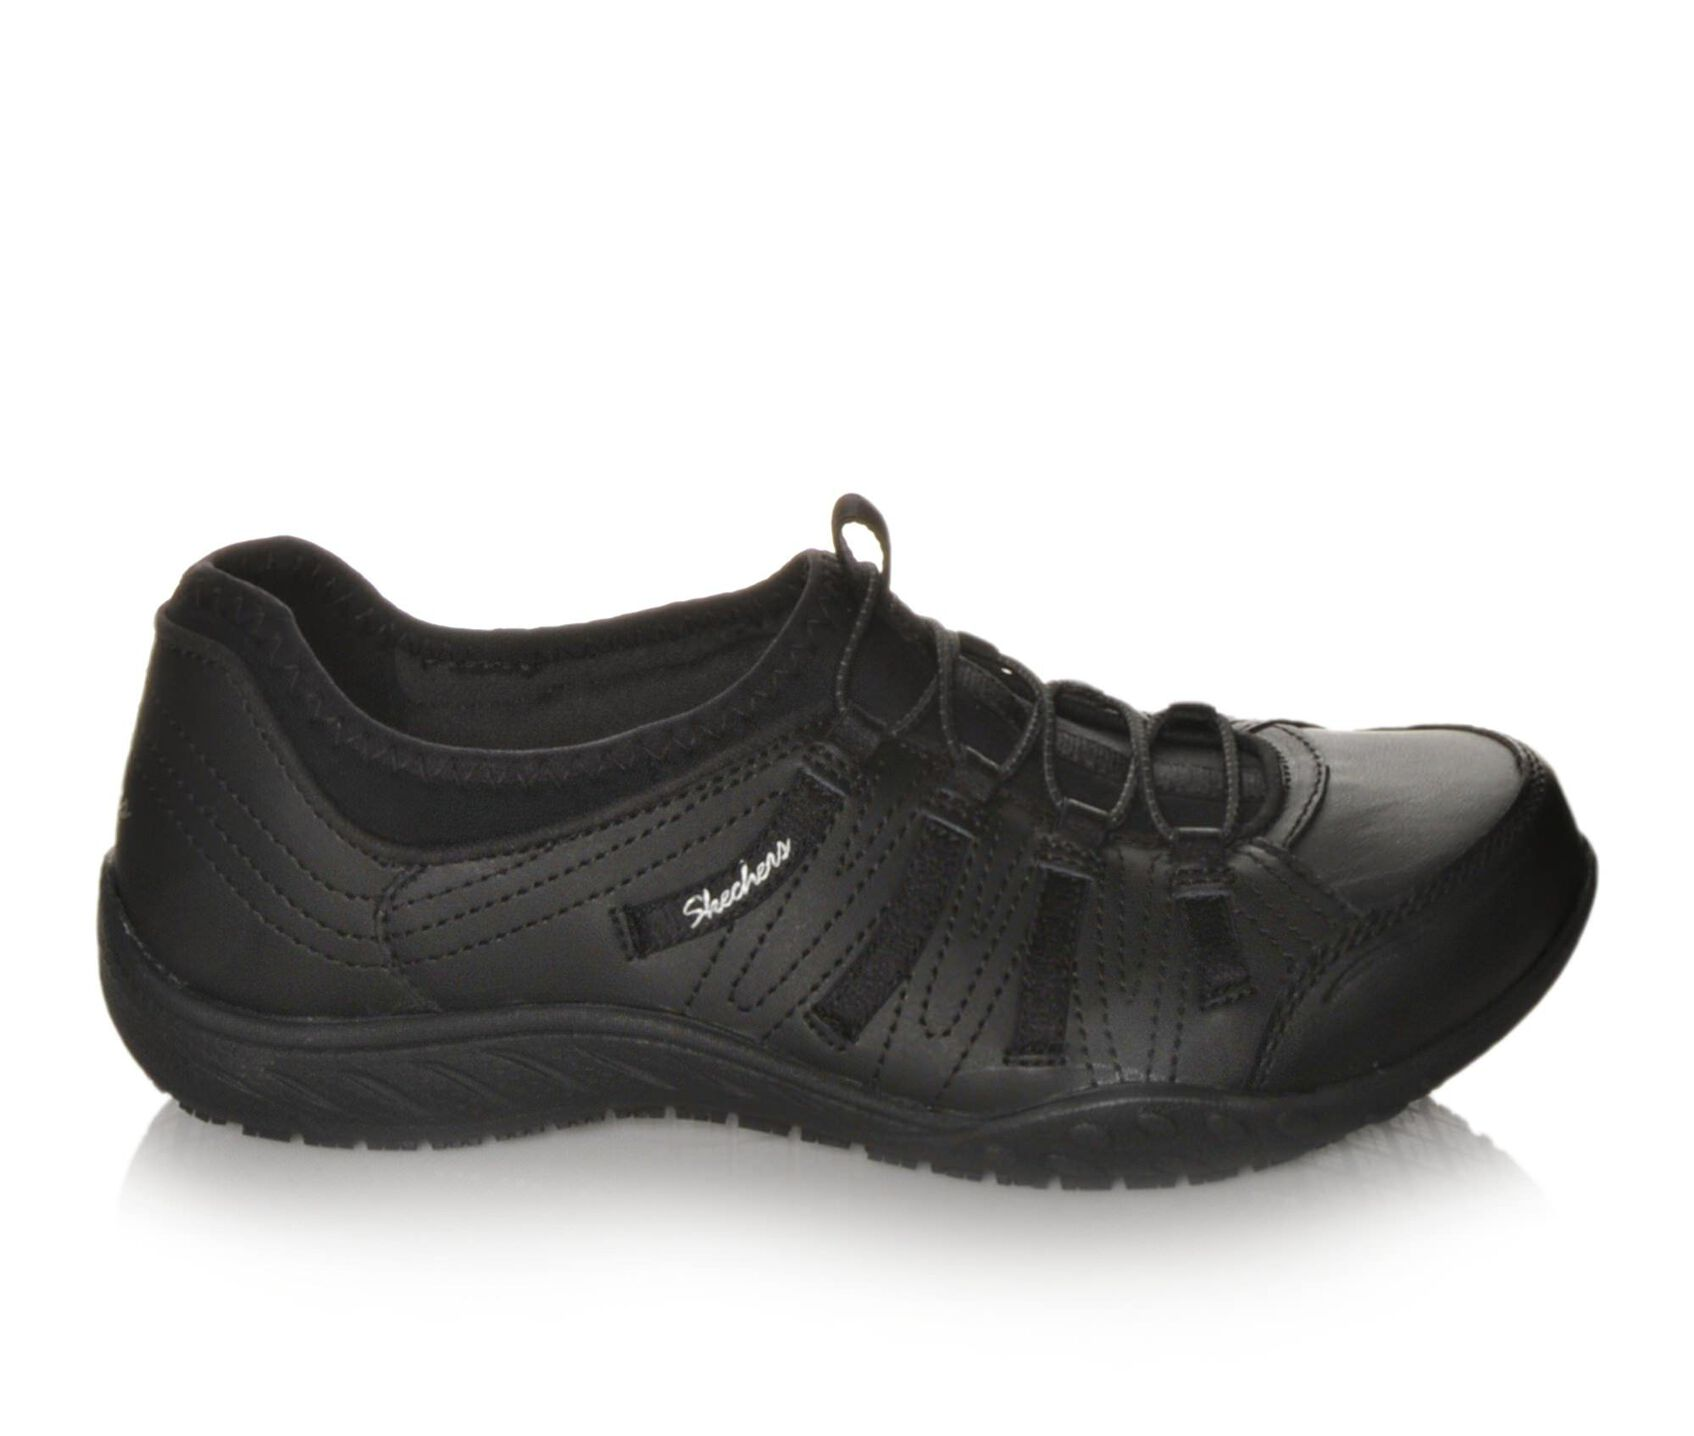 rodessa chat sites Looking for skechers women's shop online and find a large assortment of women's at qvccom don't just shop q.